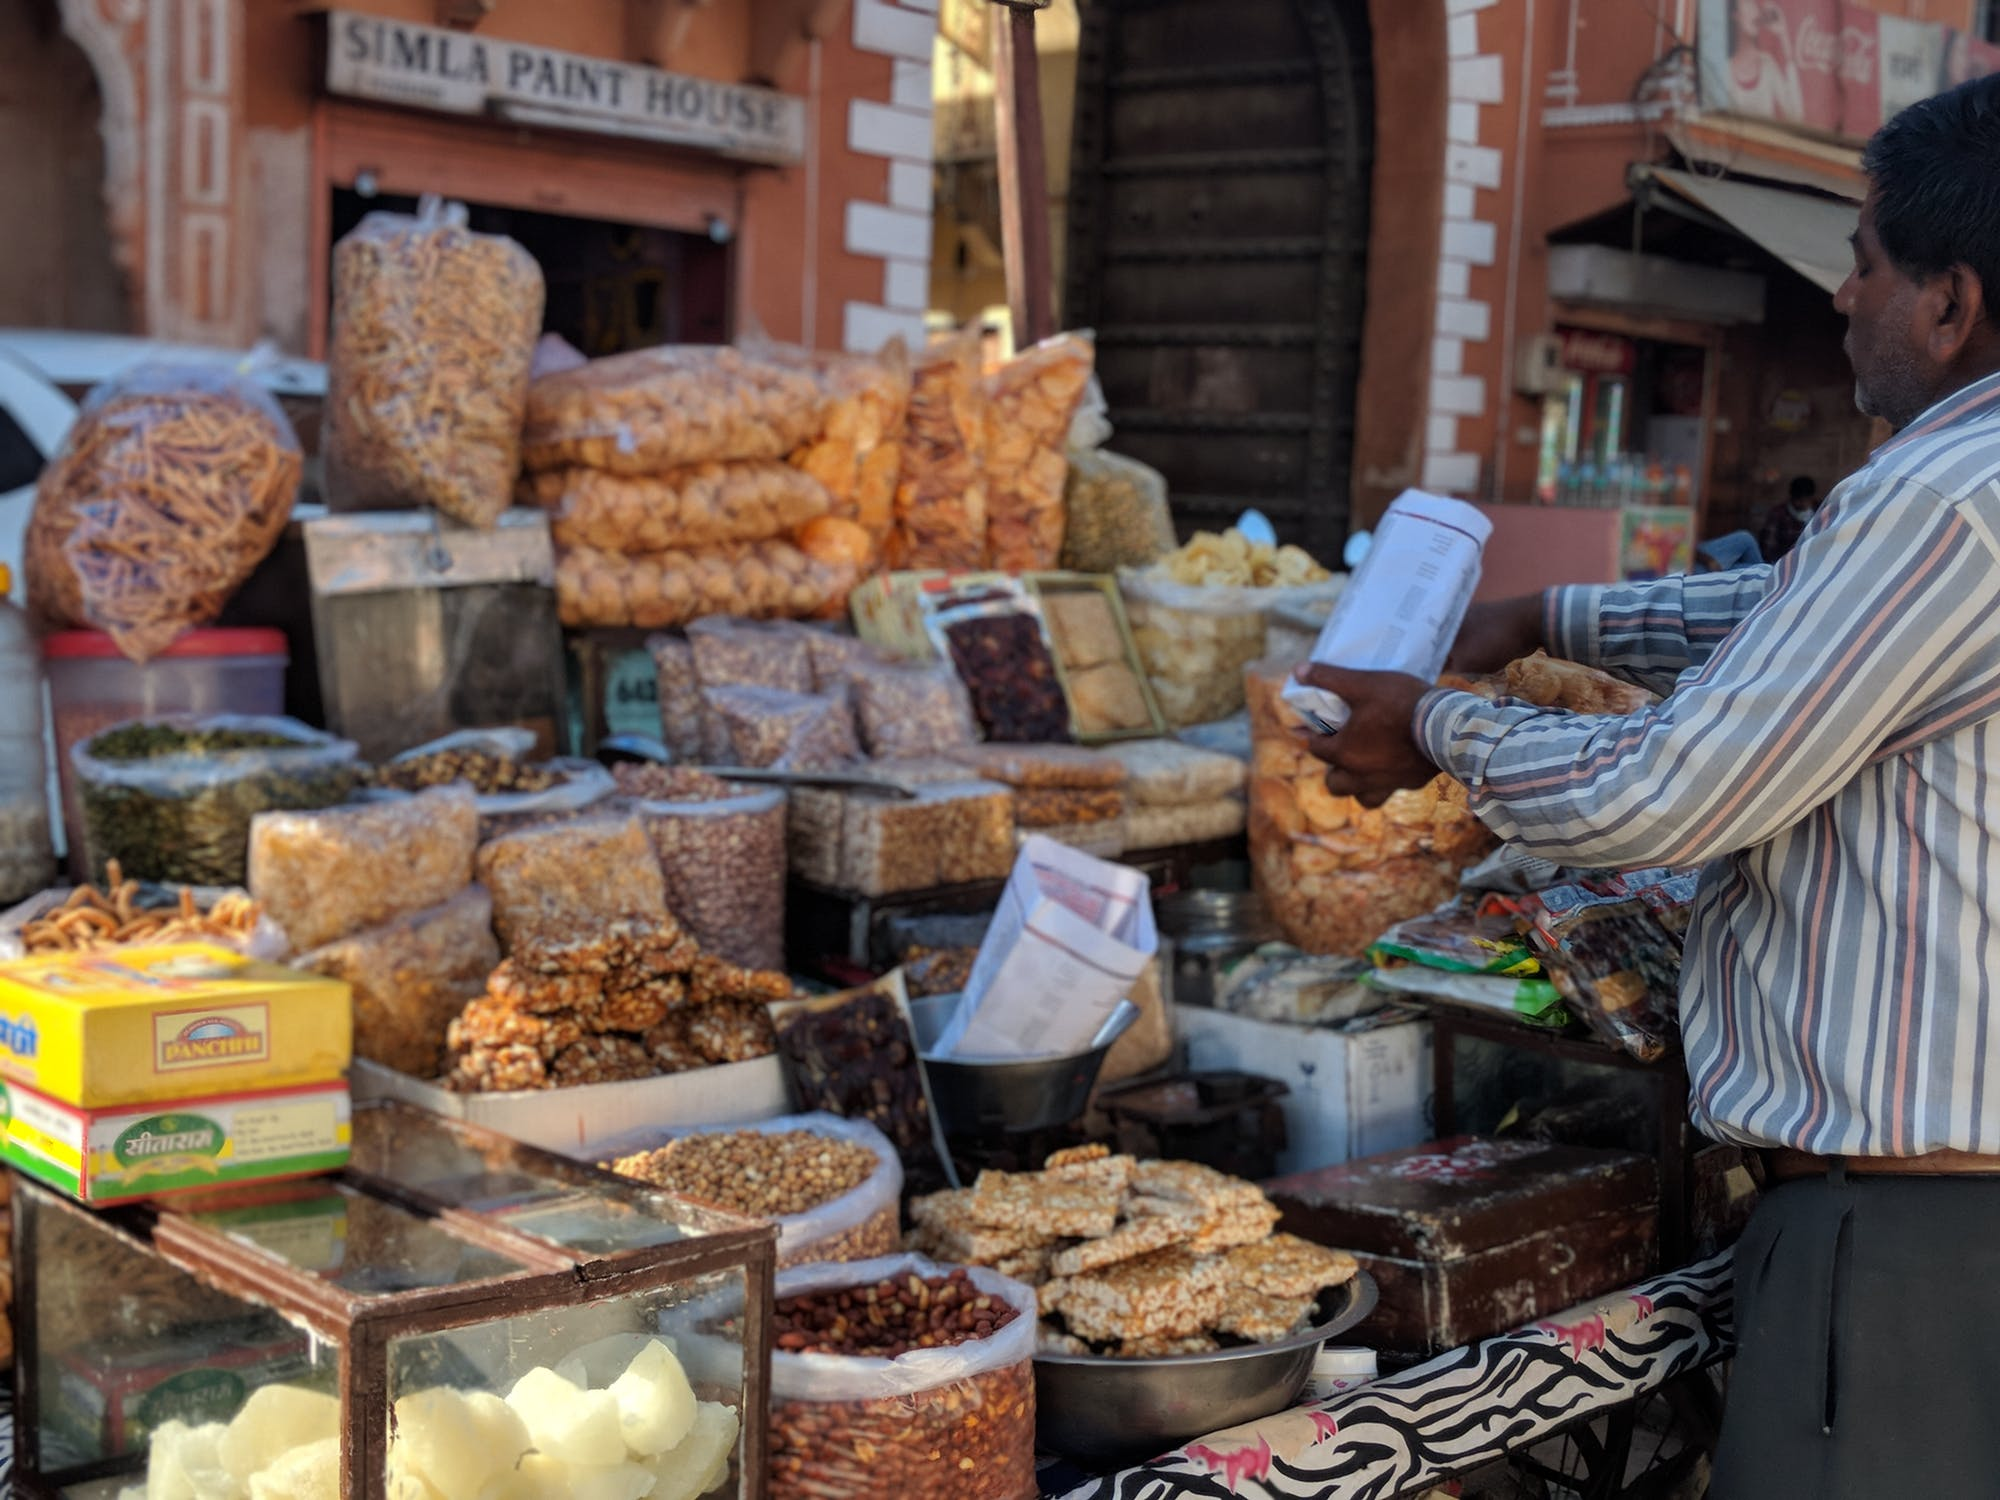 Market with seeds and nuts